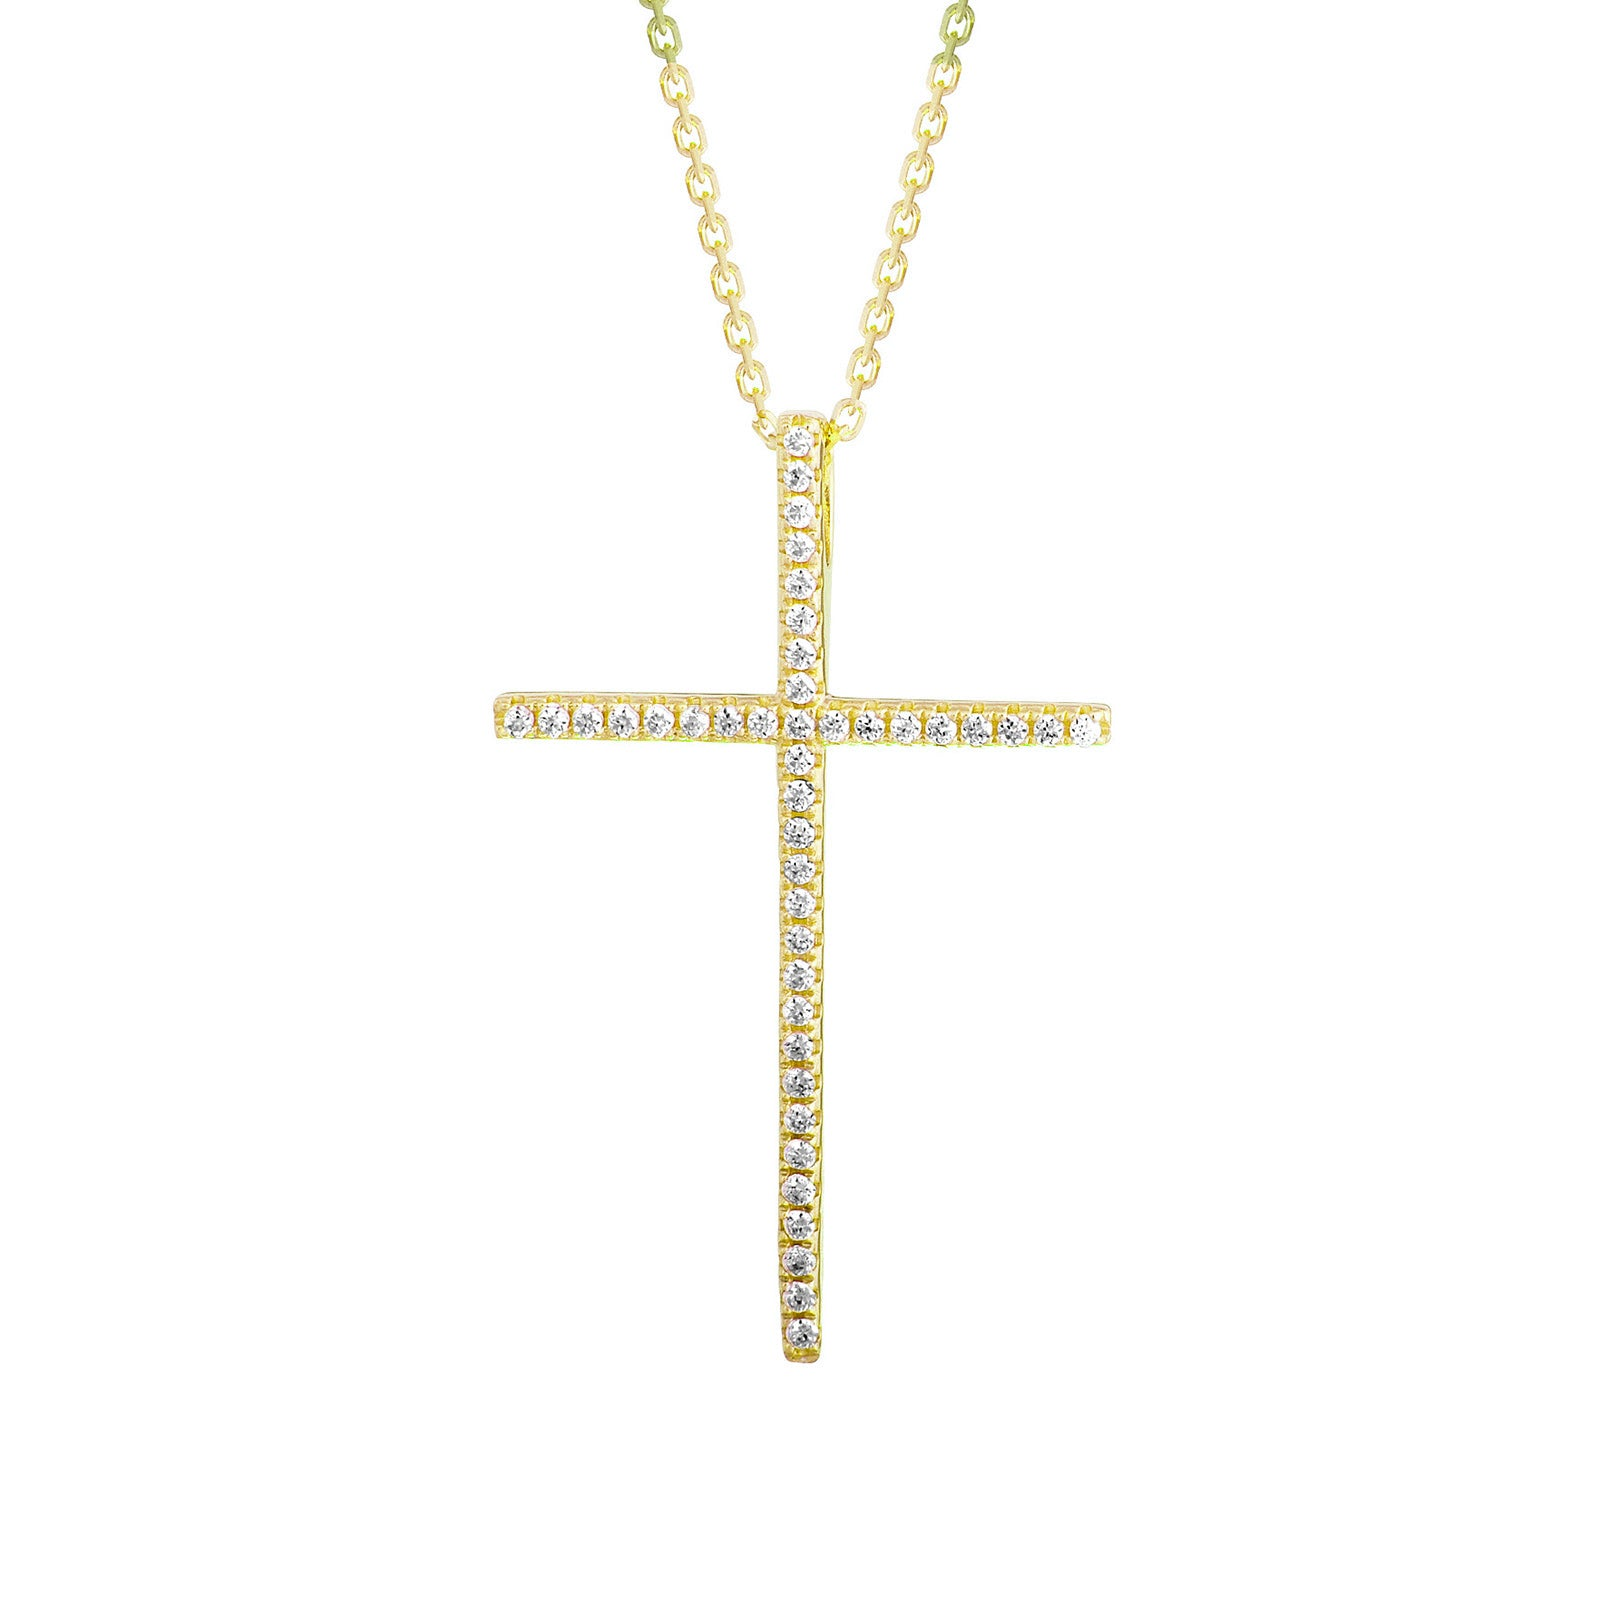 EWP120175Y-S GP Sterling Silver Cross Necklace